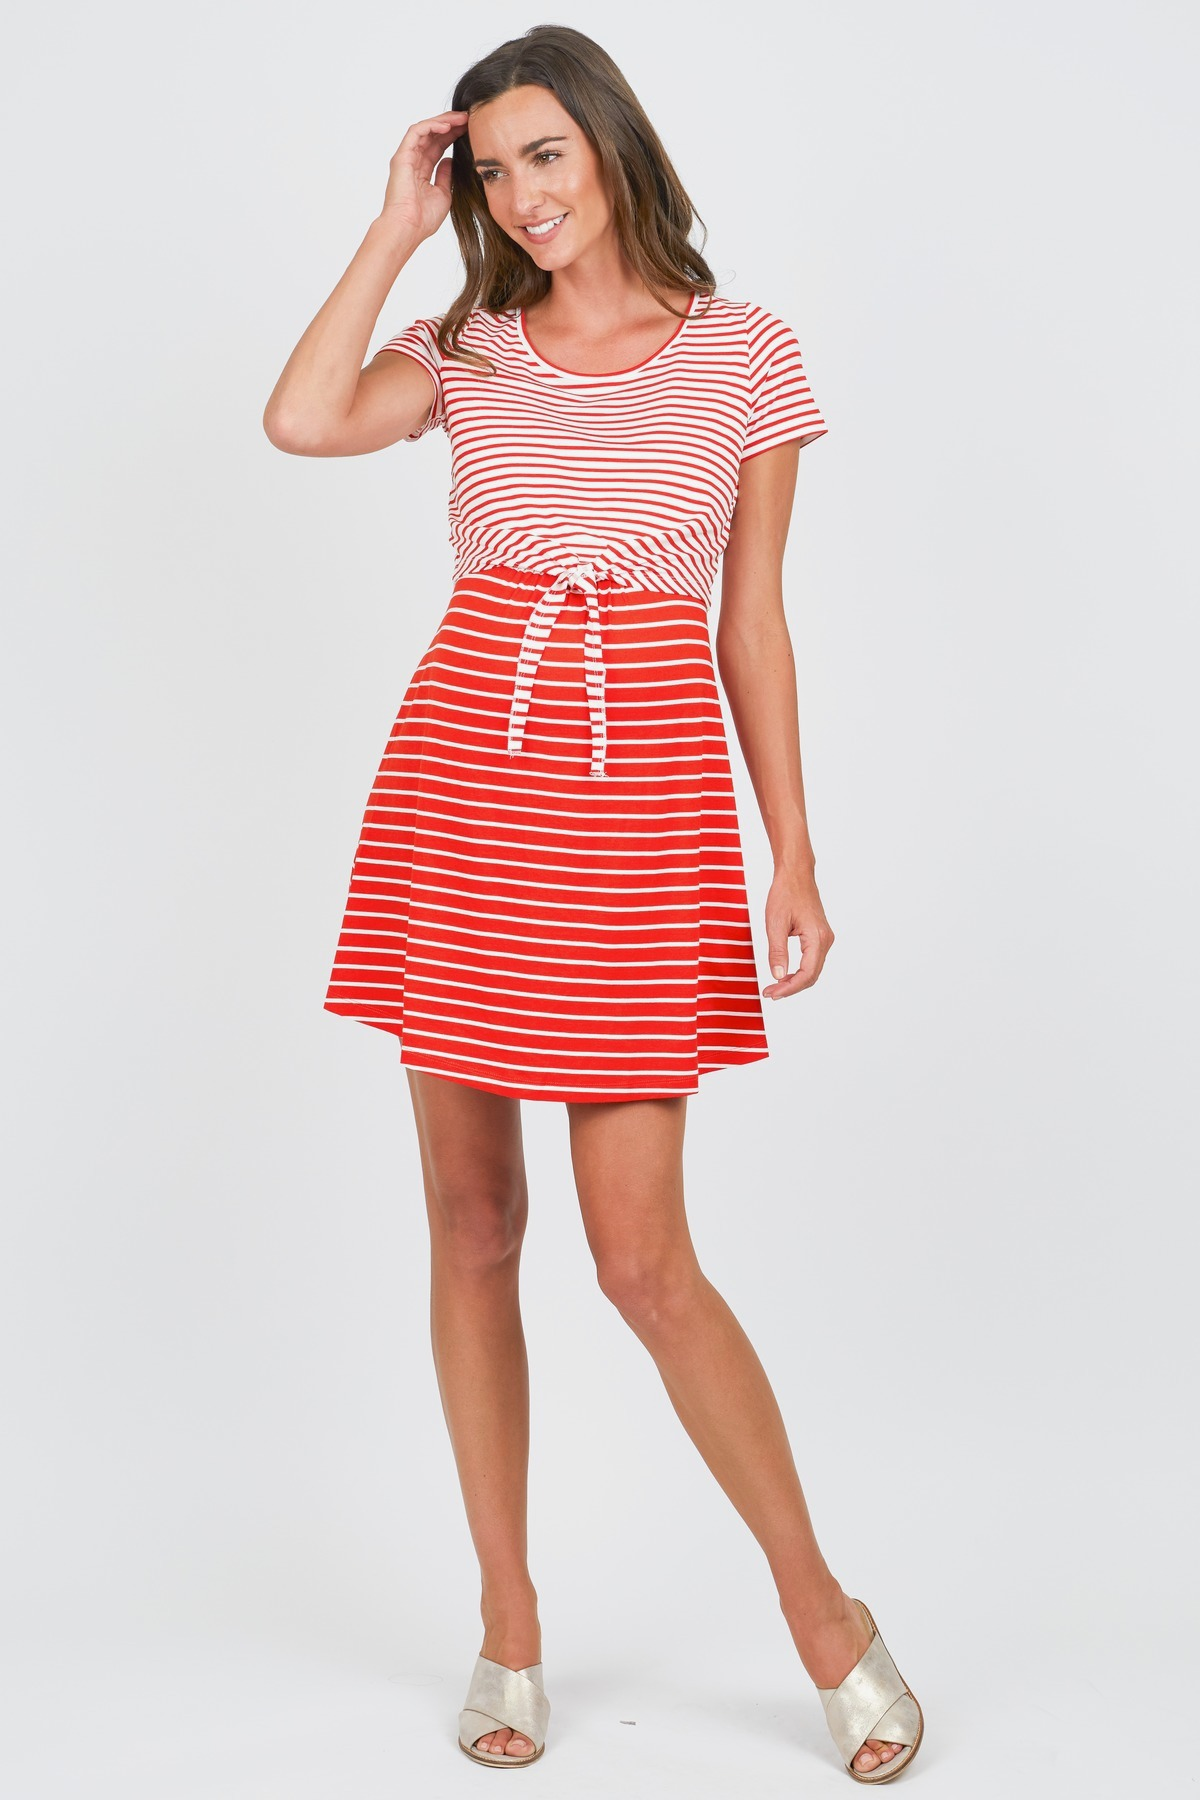 2436d5ad058d9 Tie Front Nursing Dress by Seraphine - Rent Clothes with Le Tote